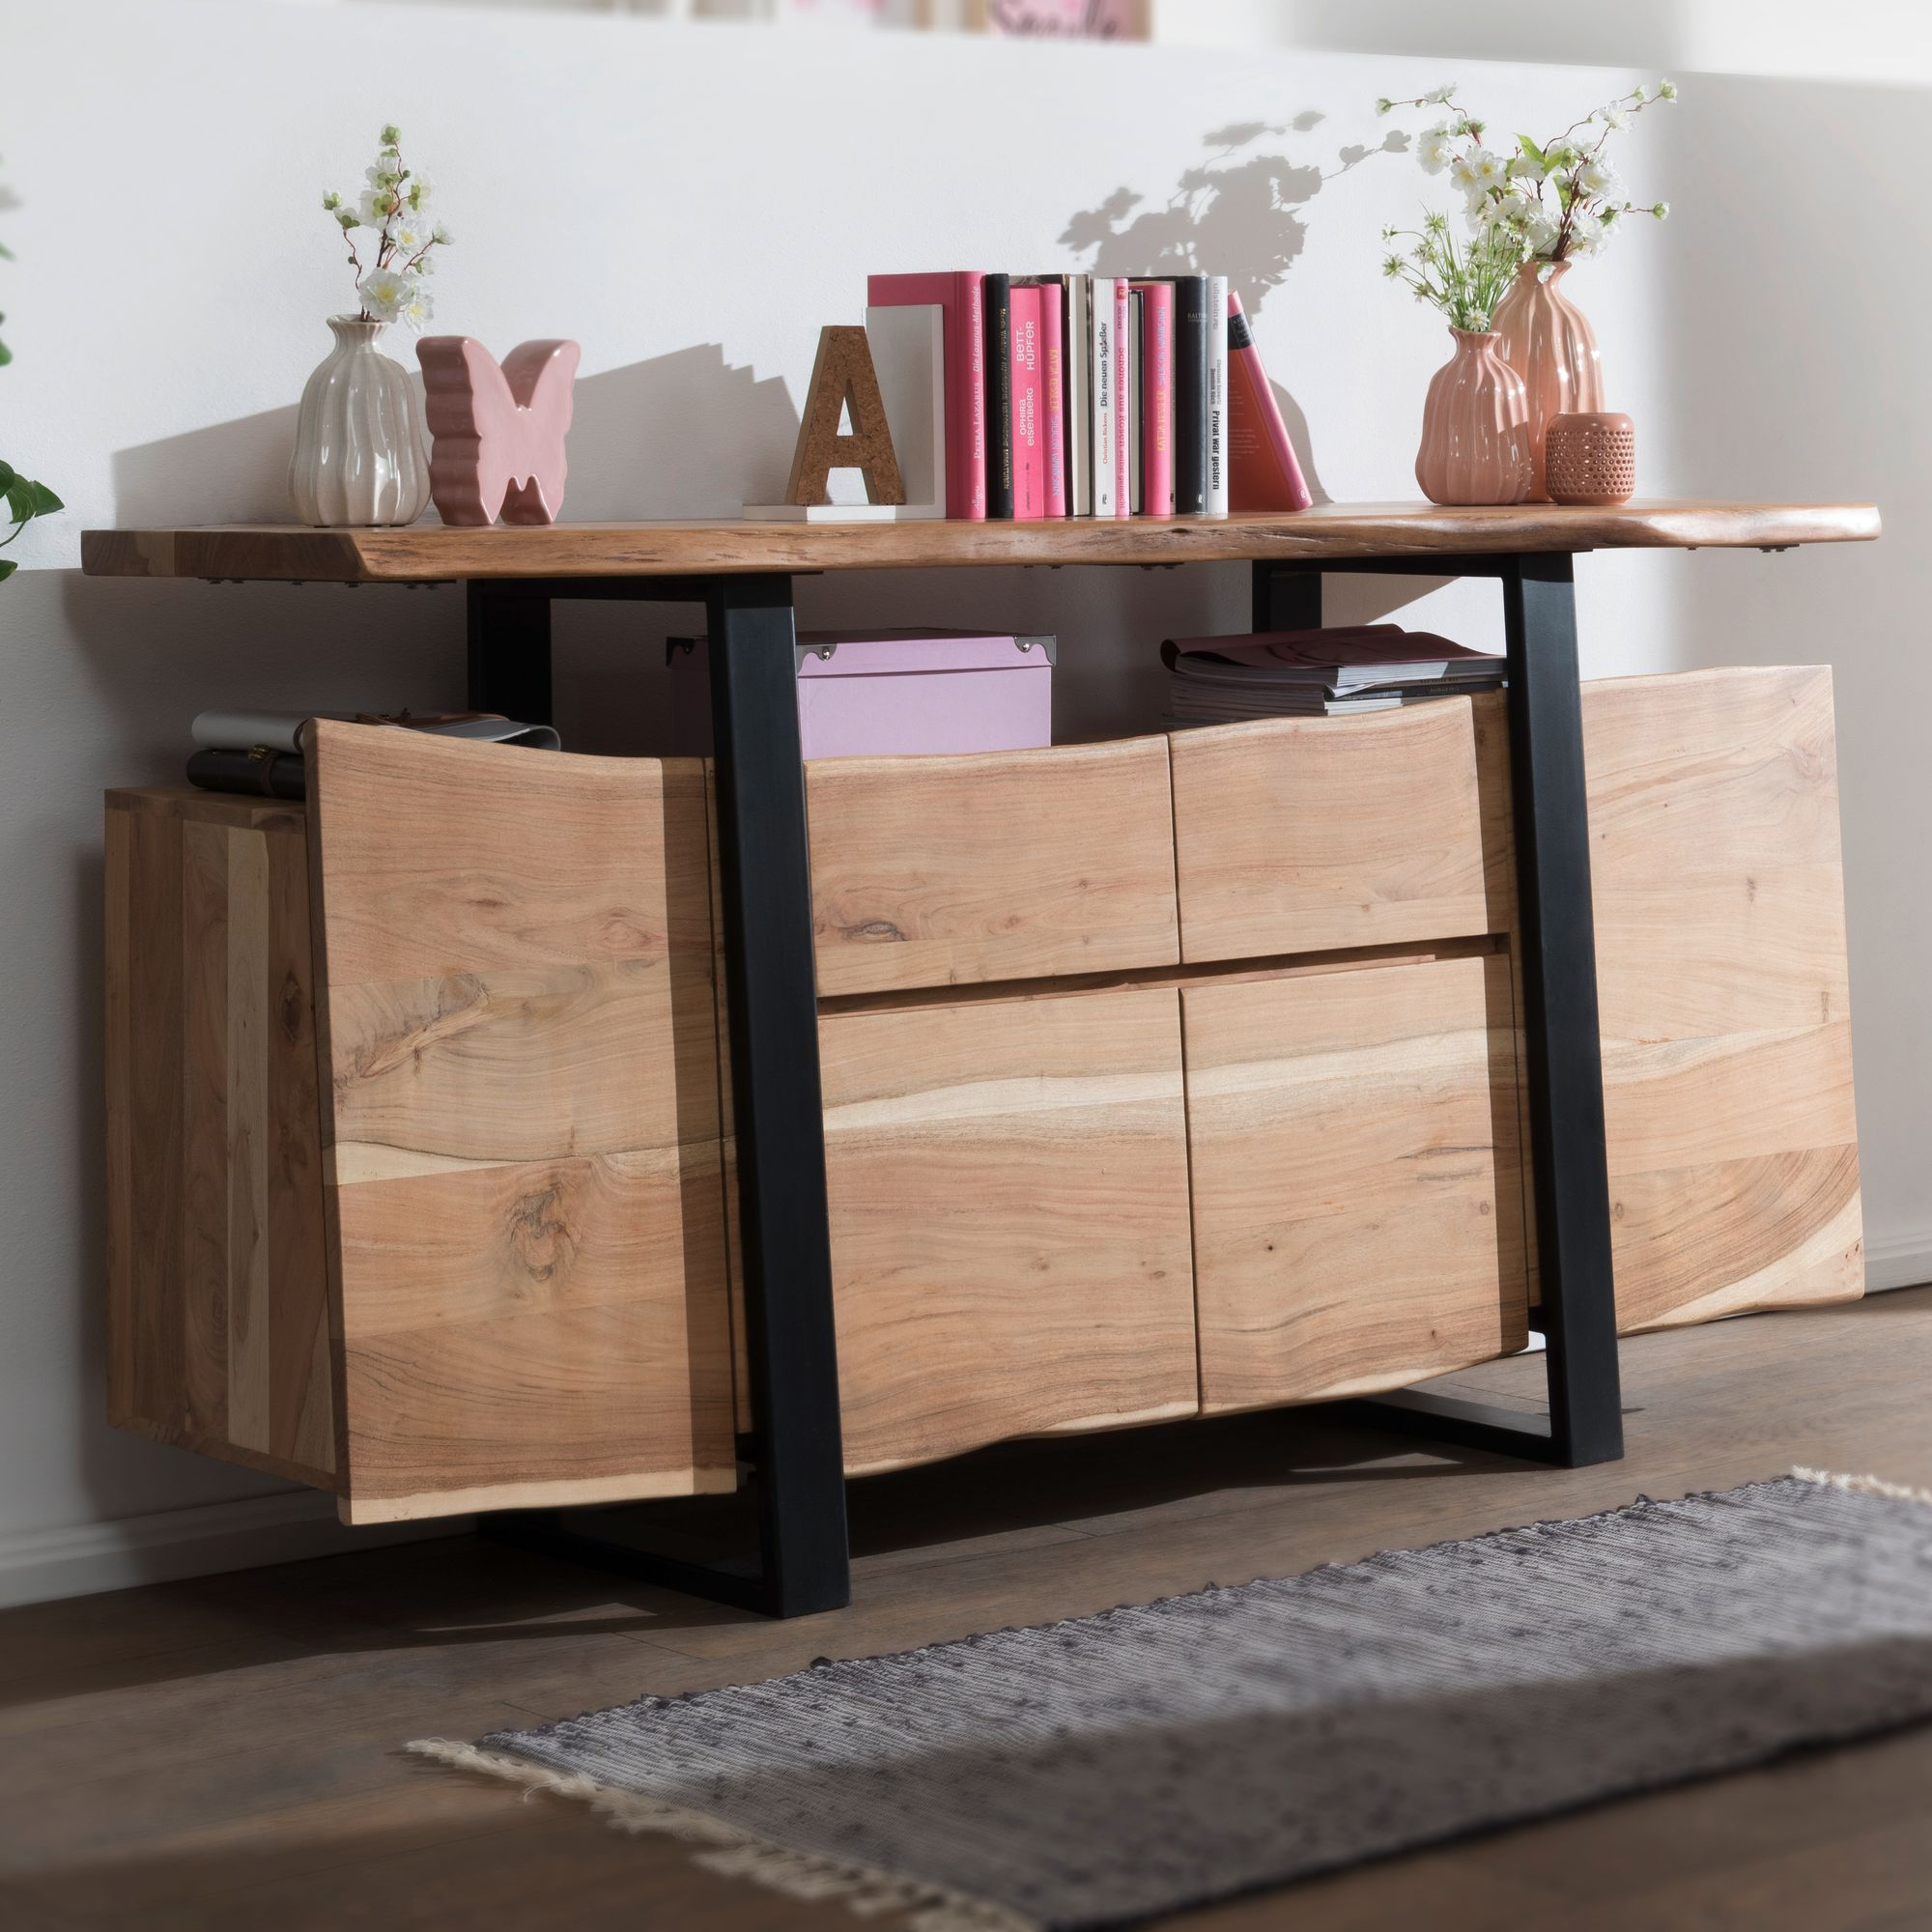 Finebuy Sideboard Akazie Kommode Massiv Holz 175x90x44cm Highboard